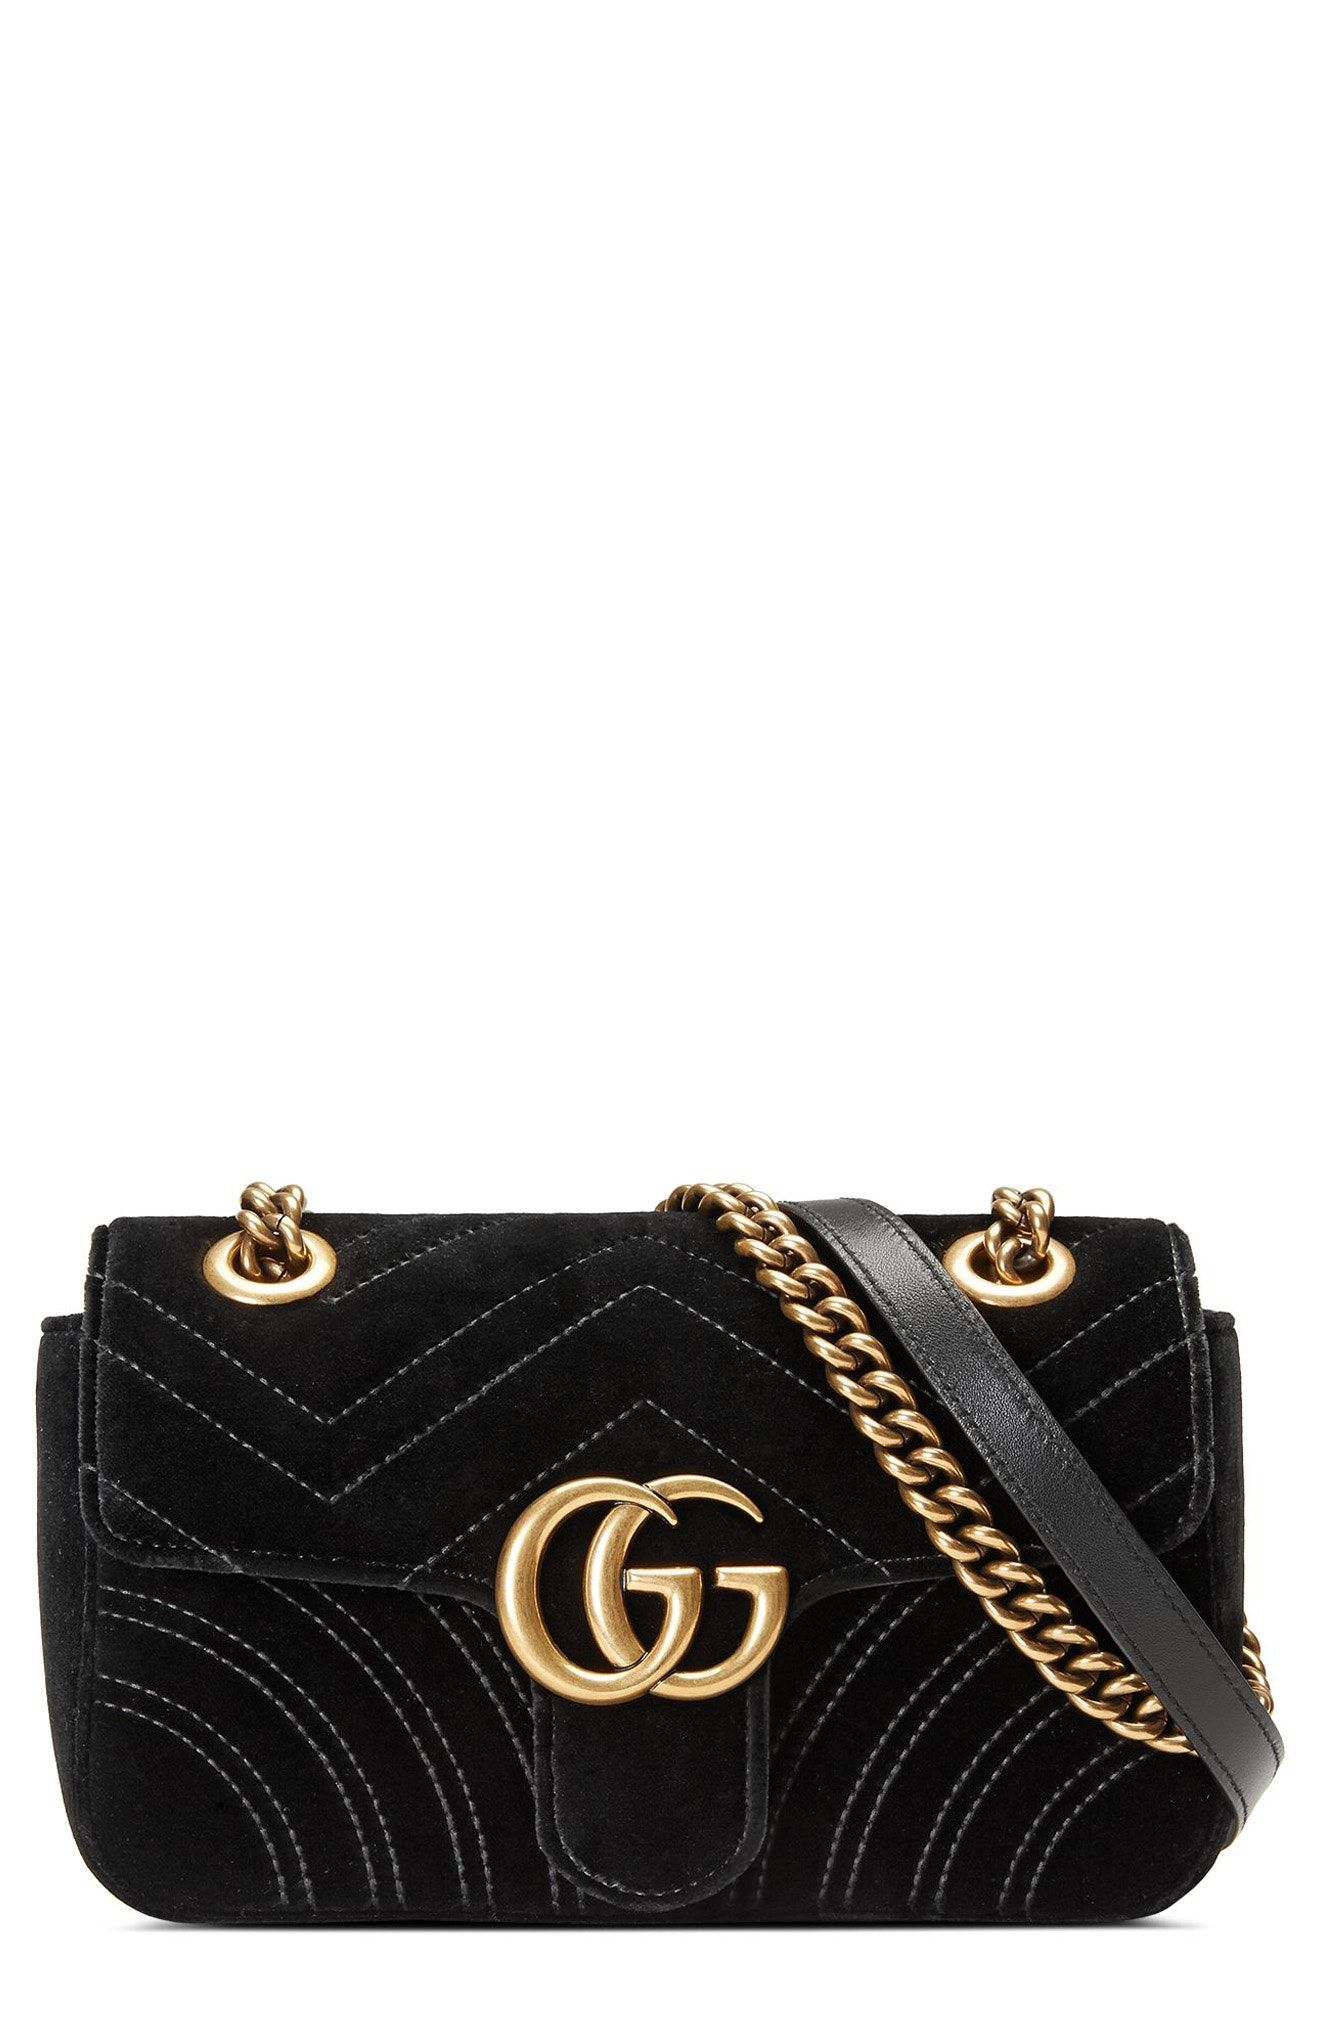 31e020e0907 New Gucci Small GG Marmont 2.0 Matelass  Velvet Shoulder Bag fashion  online.   1290   shop.seehandbags